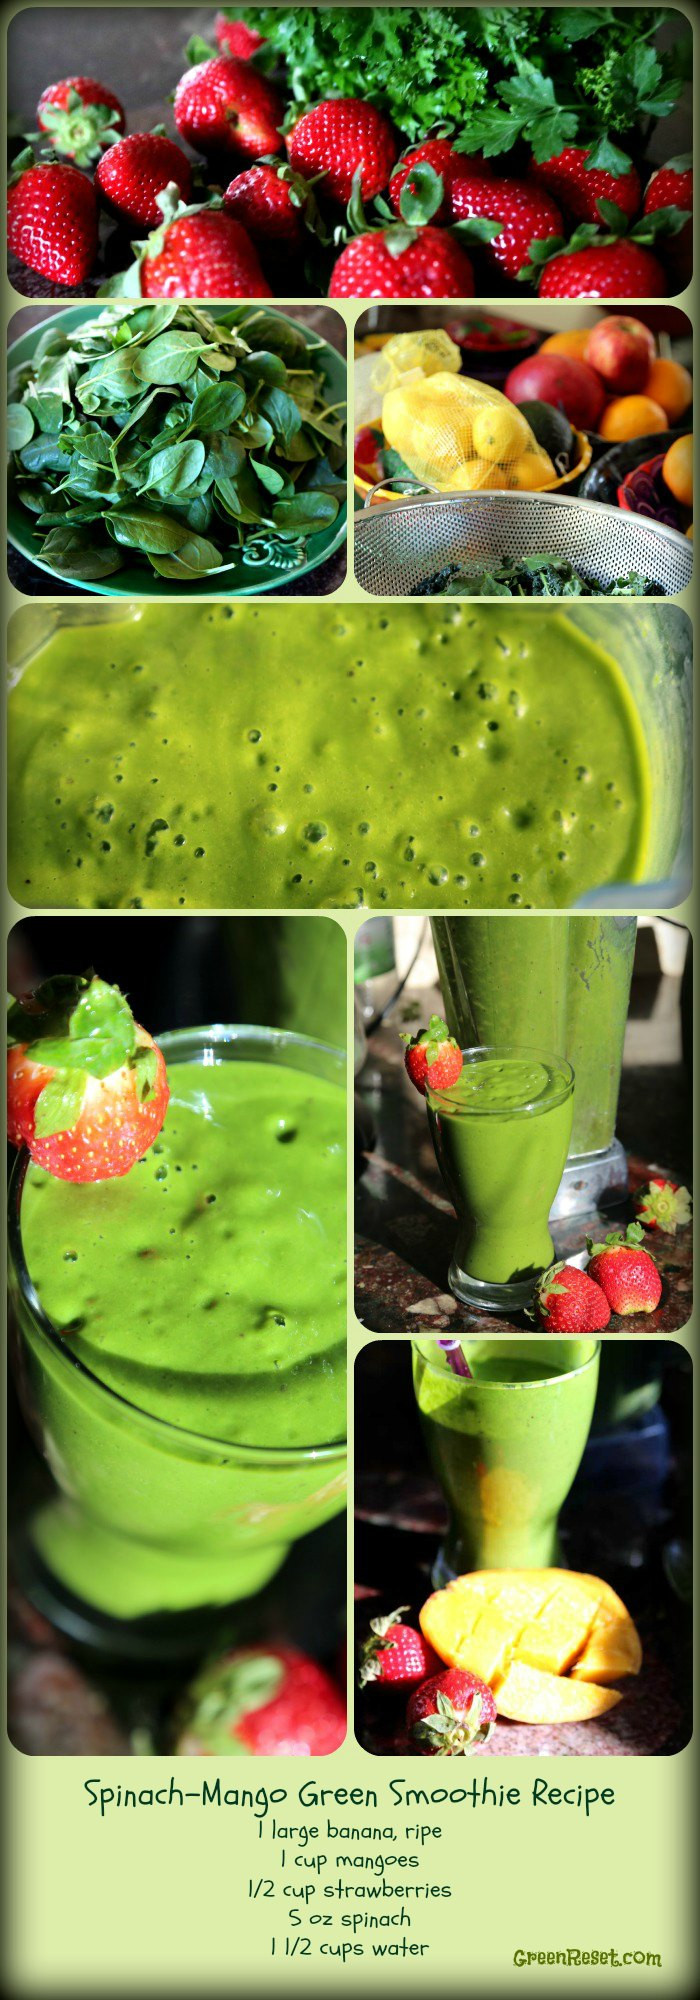 Smoothie Recipes With Spinach  10 Spinach Recipes for Smoothies